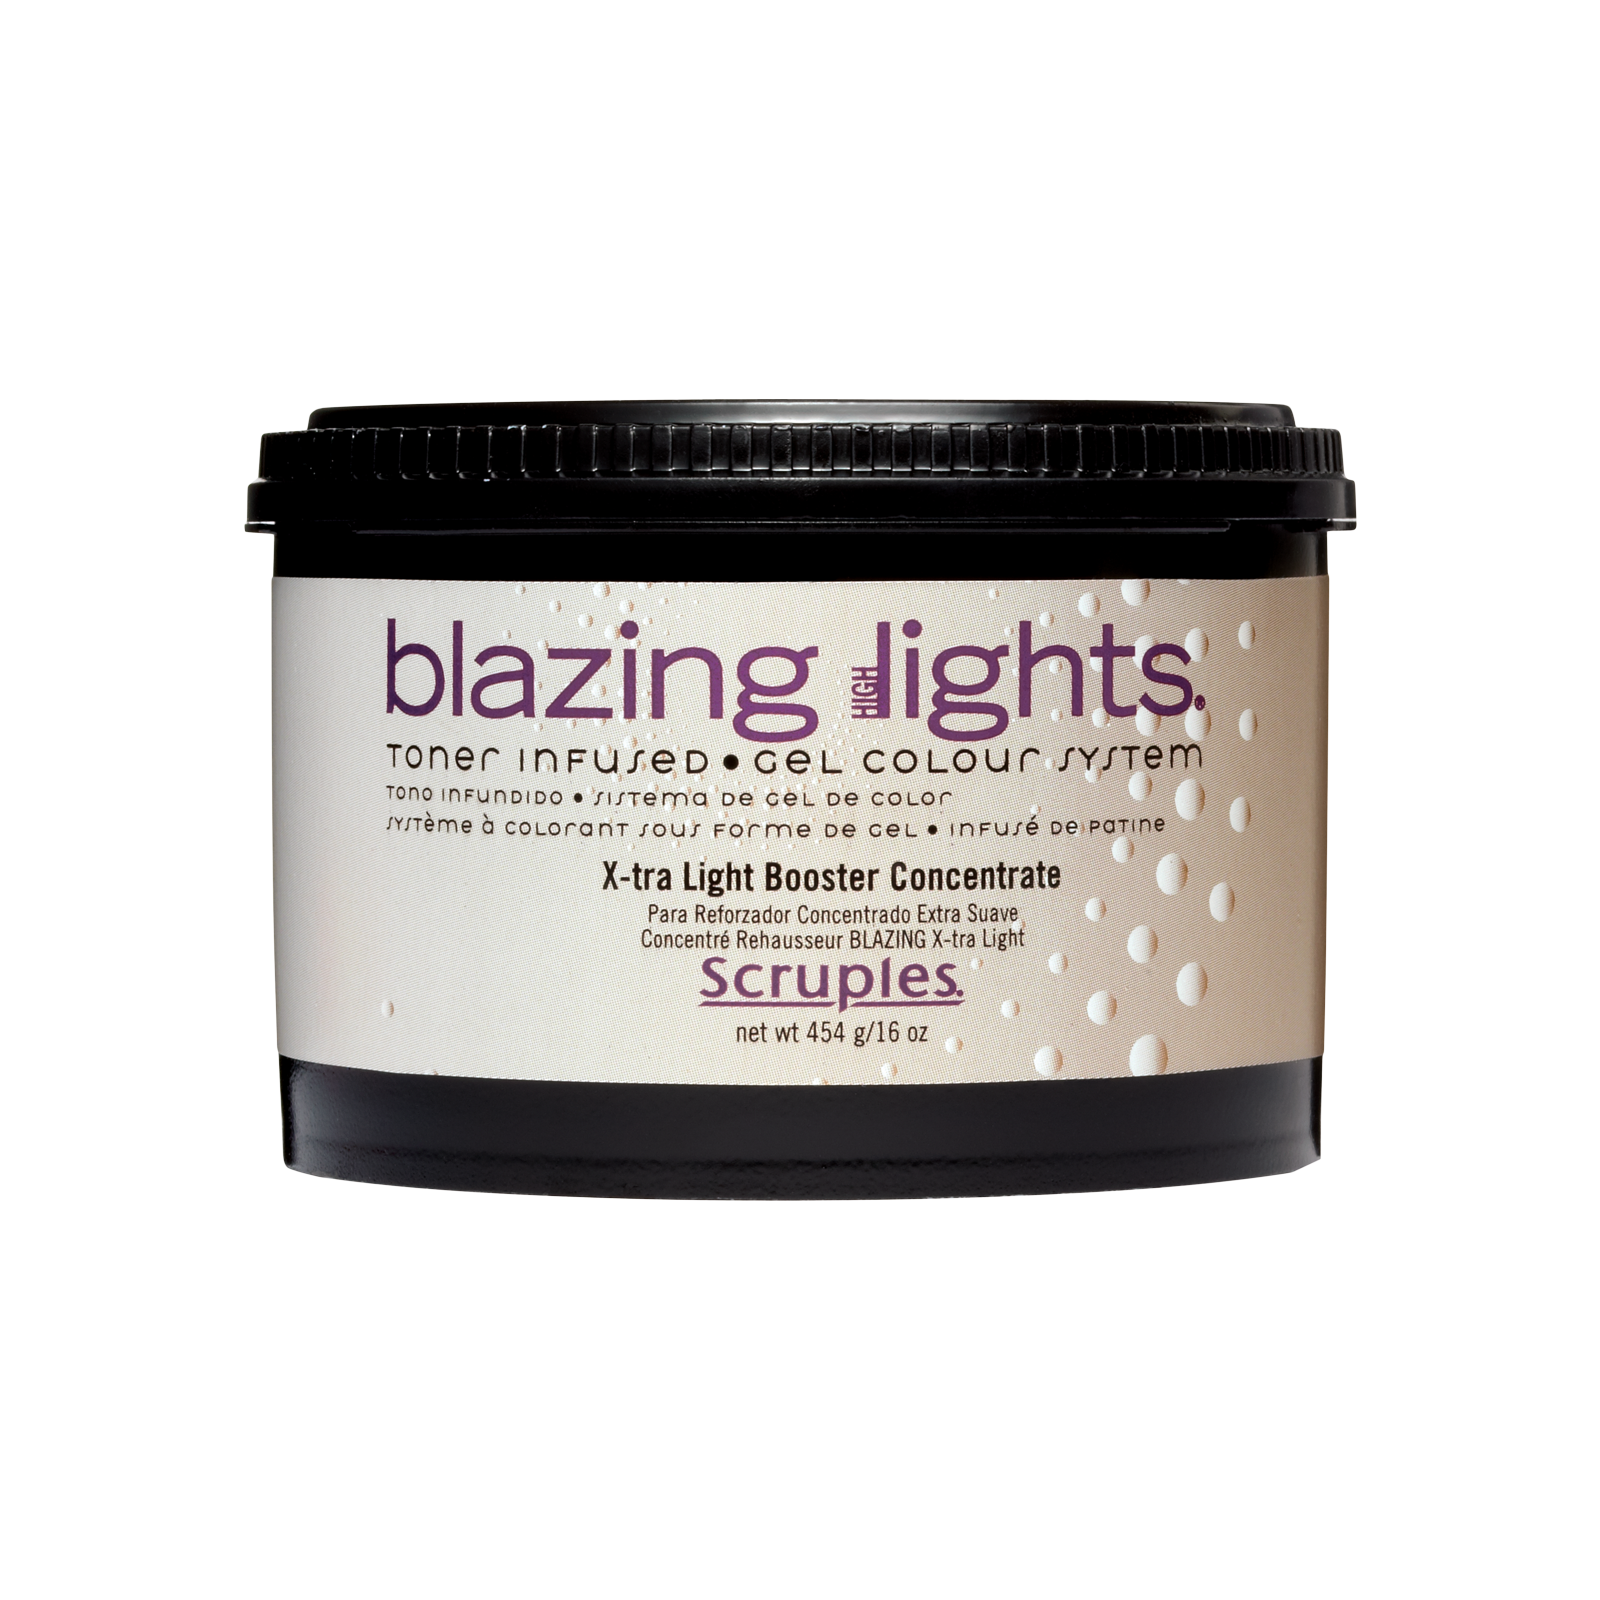 Blazing highlights intro scruples cosmoprof x tra light booster concentrate measuring cup haircolor nvjuhfo Choice Image